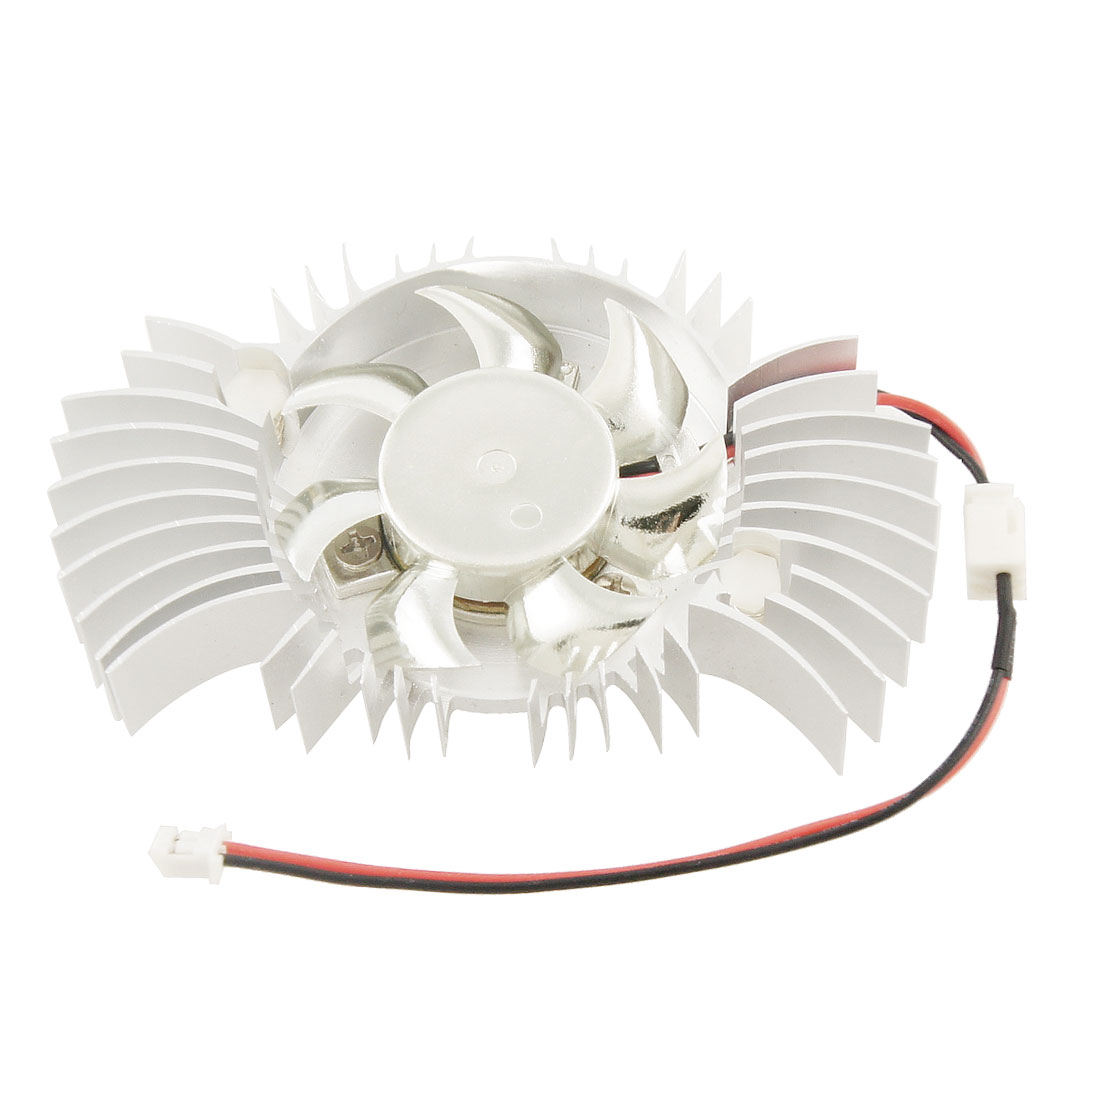 DC 12V 2Terminals Batterfly Shaped Computer Card Heatsink Cooling Fan Cooler